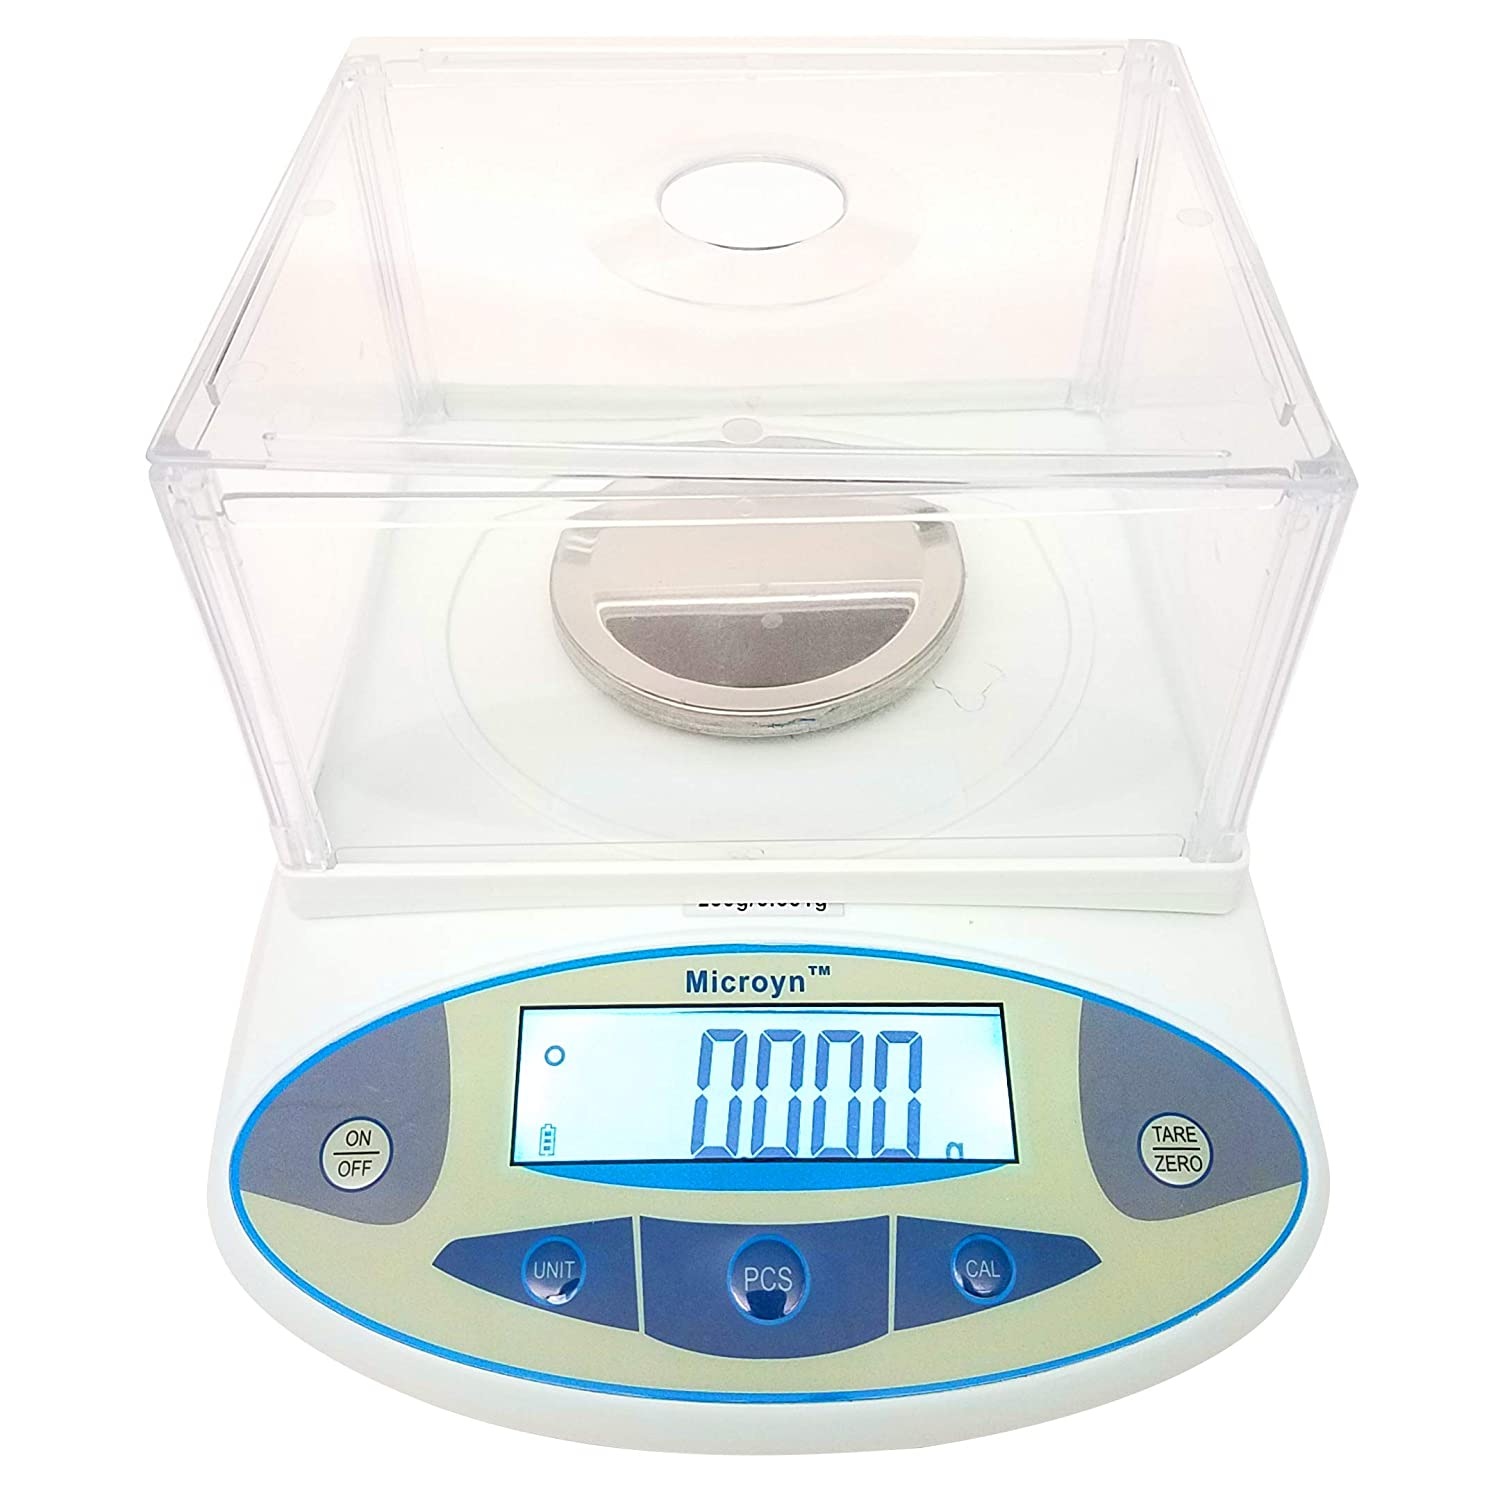 1mg Super National uniform free shipping sale period limited Digital Analytical Balance Electronic Precision Lab Ba Scale